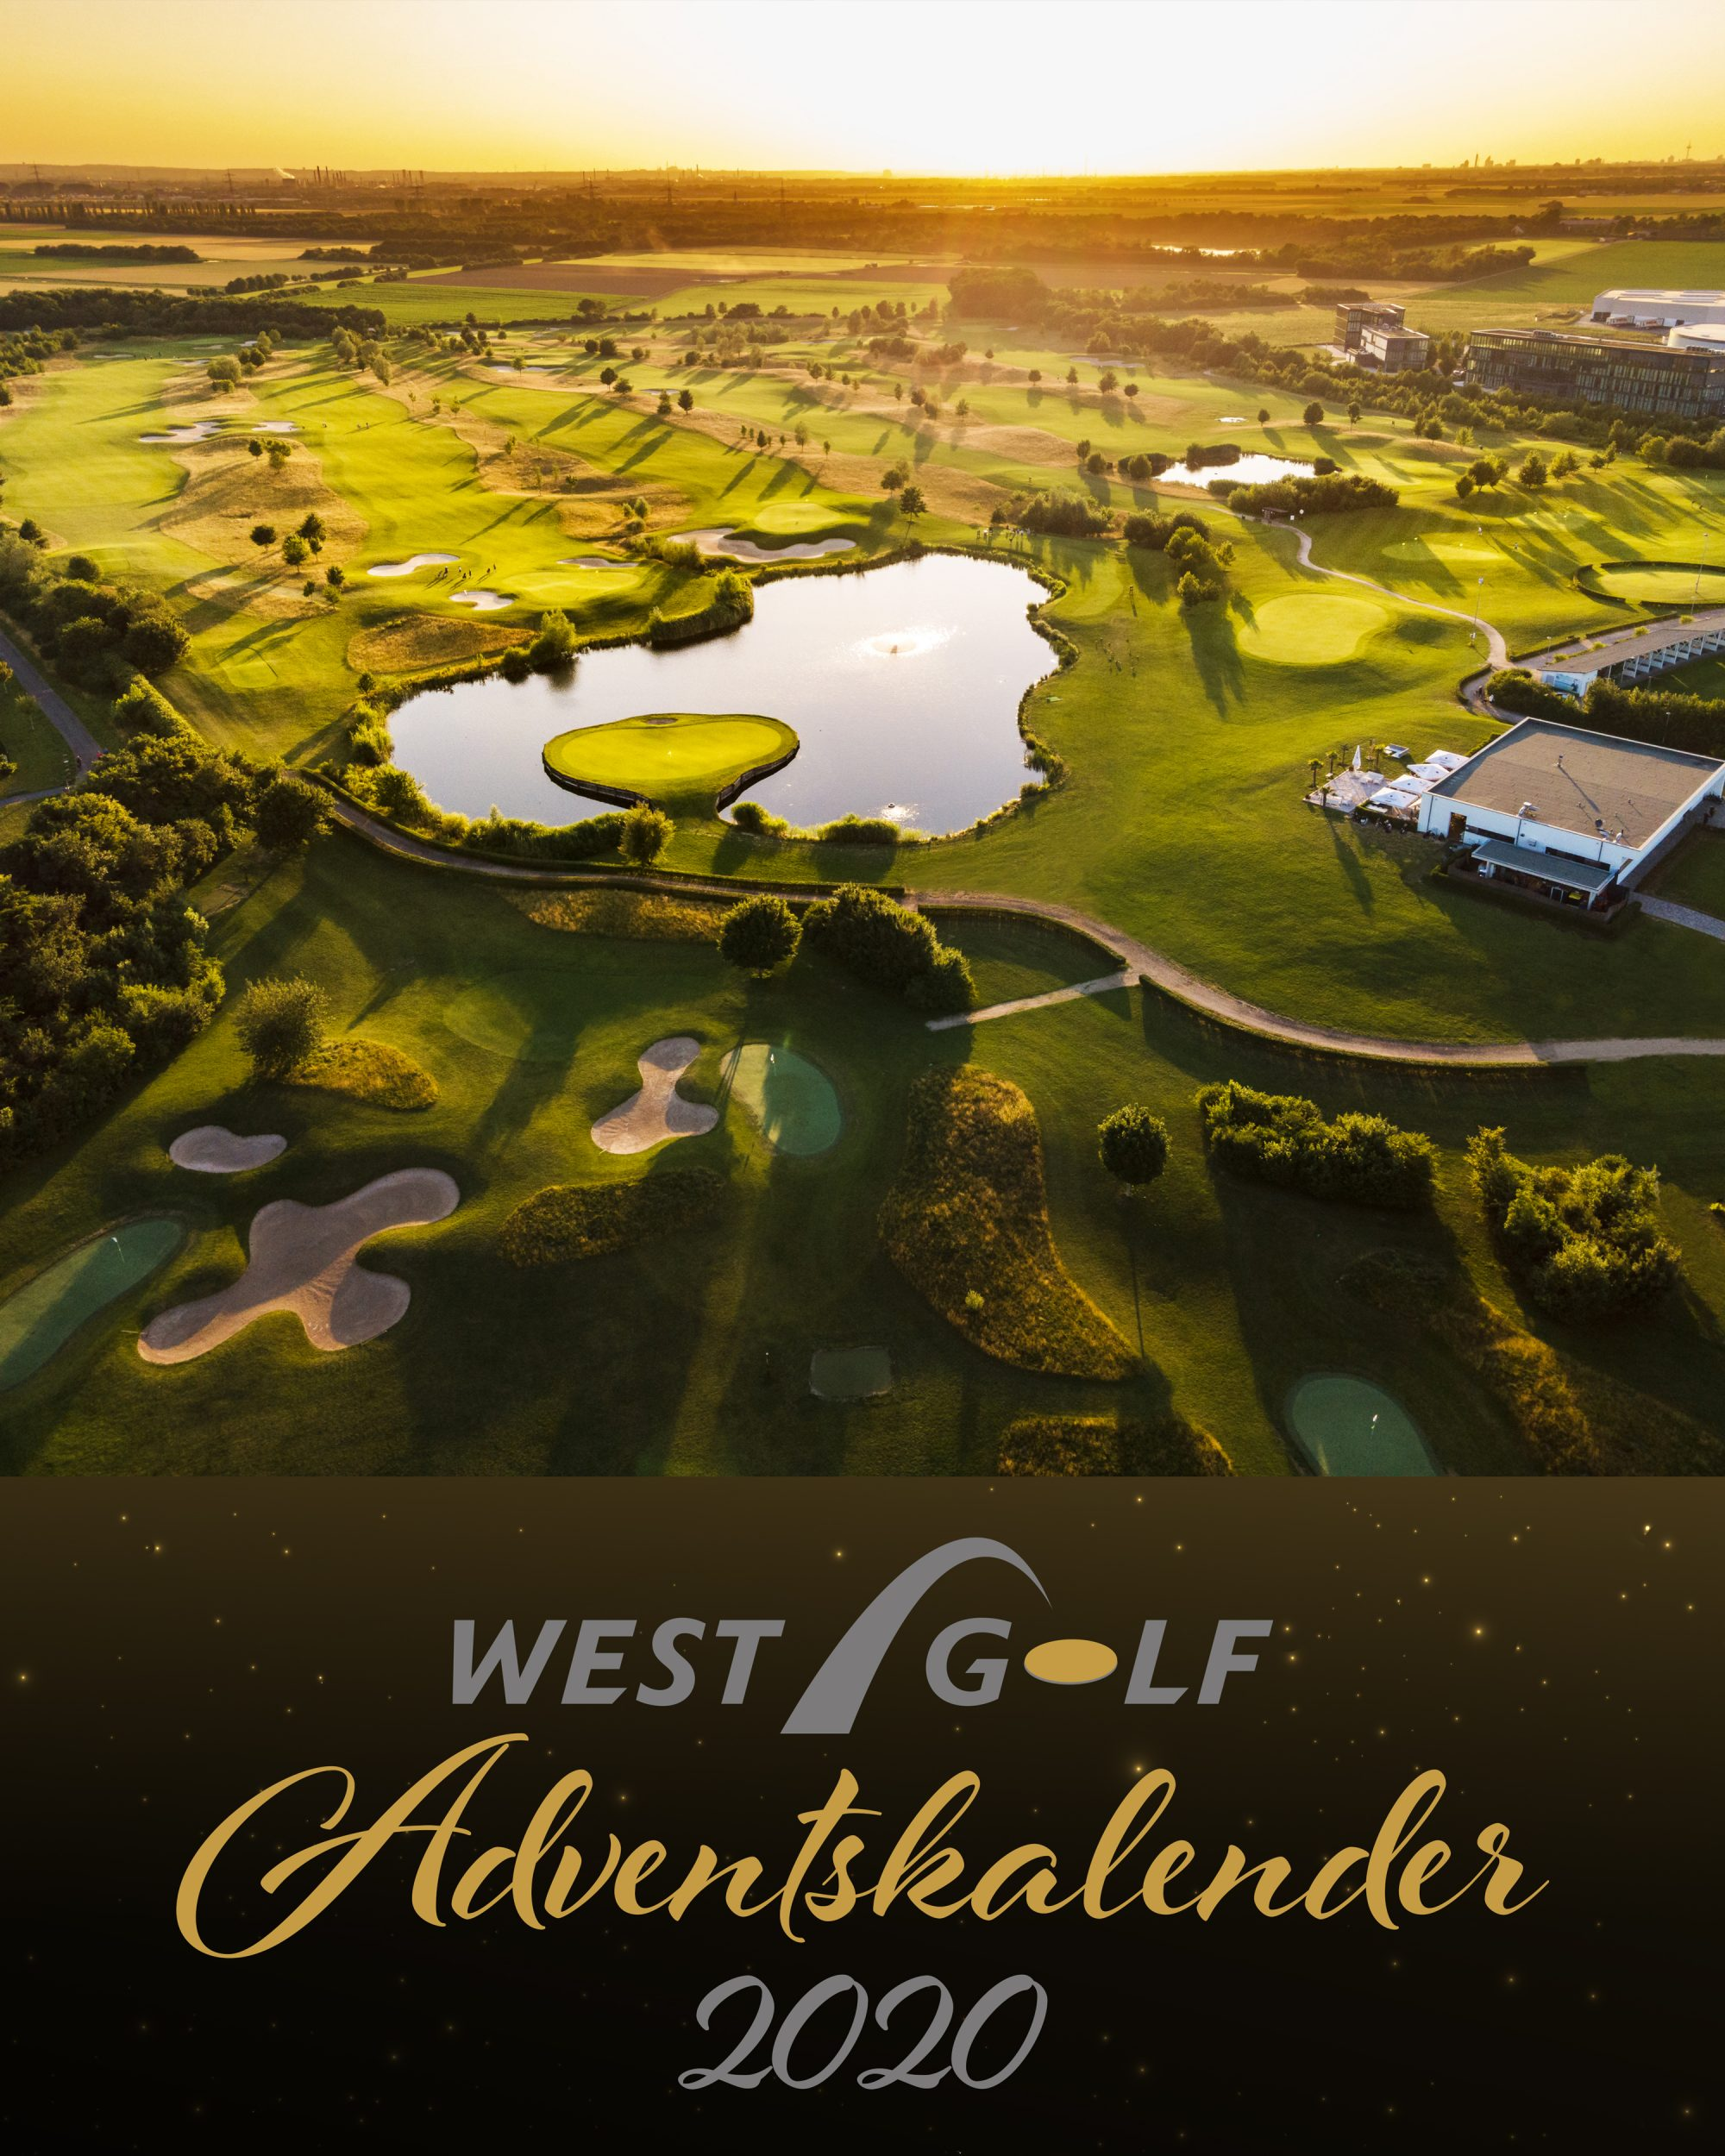 WEST GOLF Adventskalender 2020